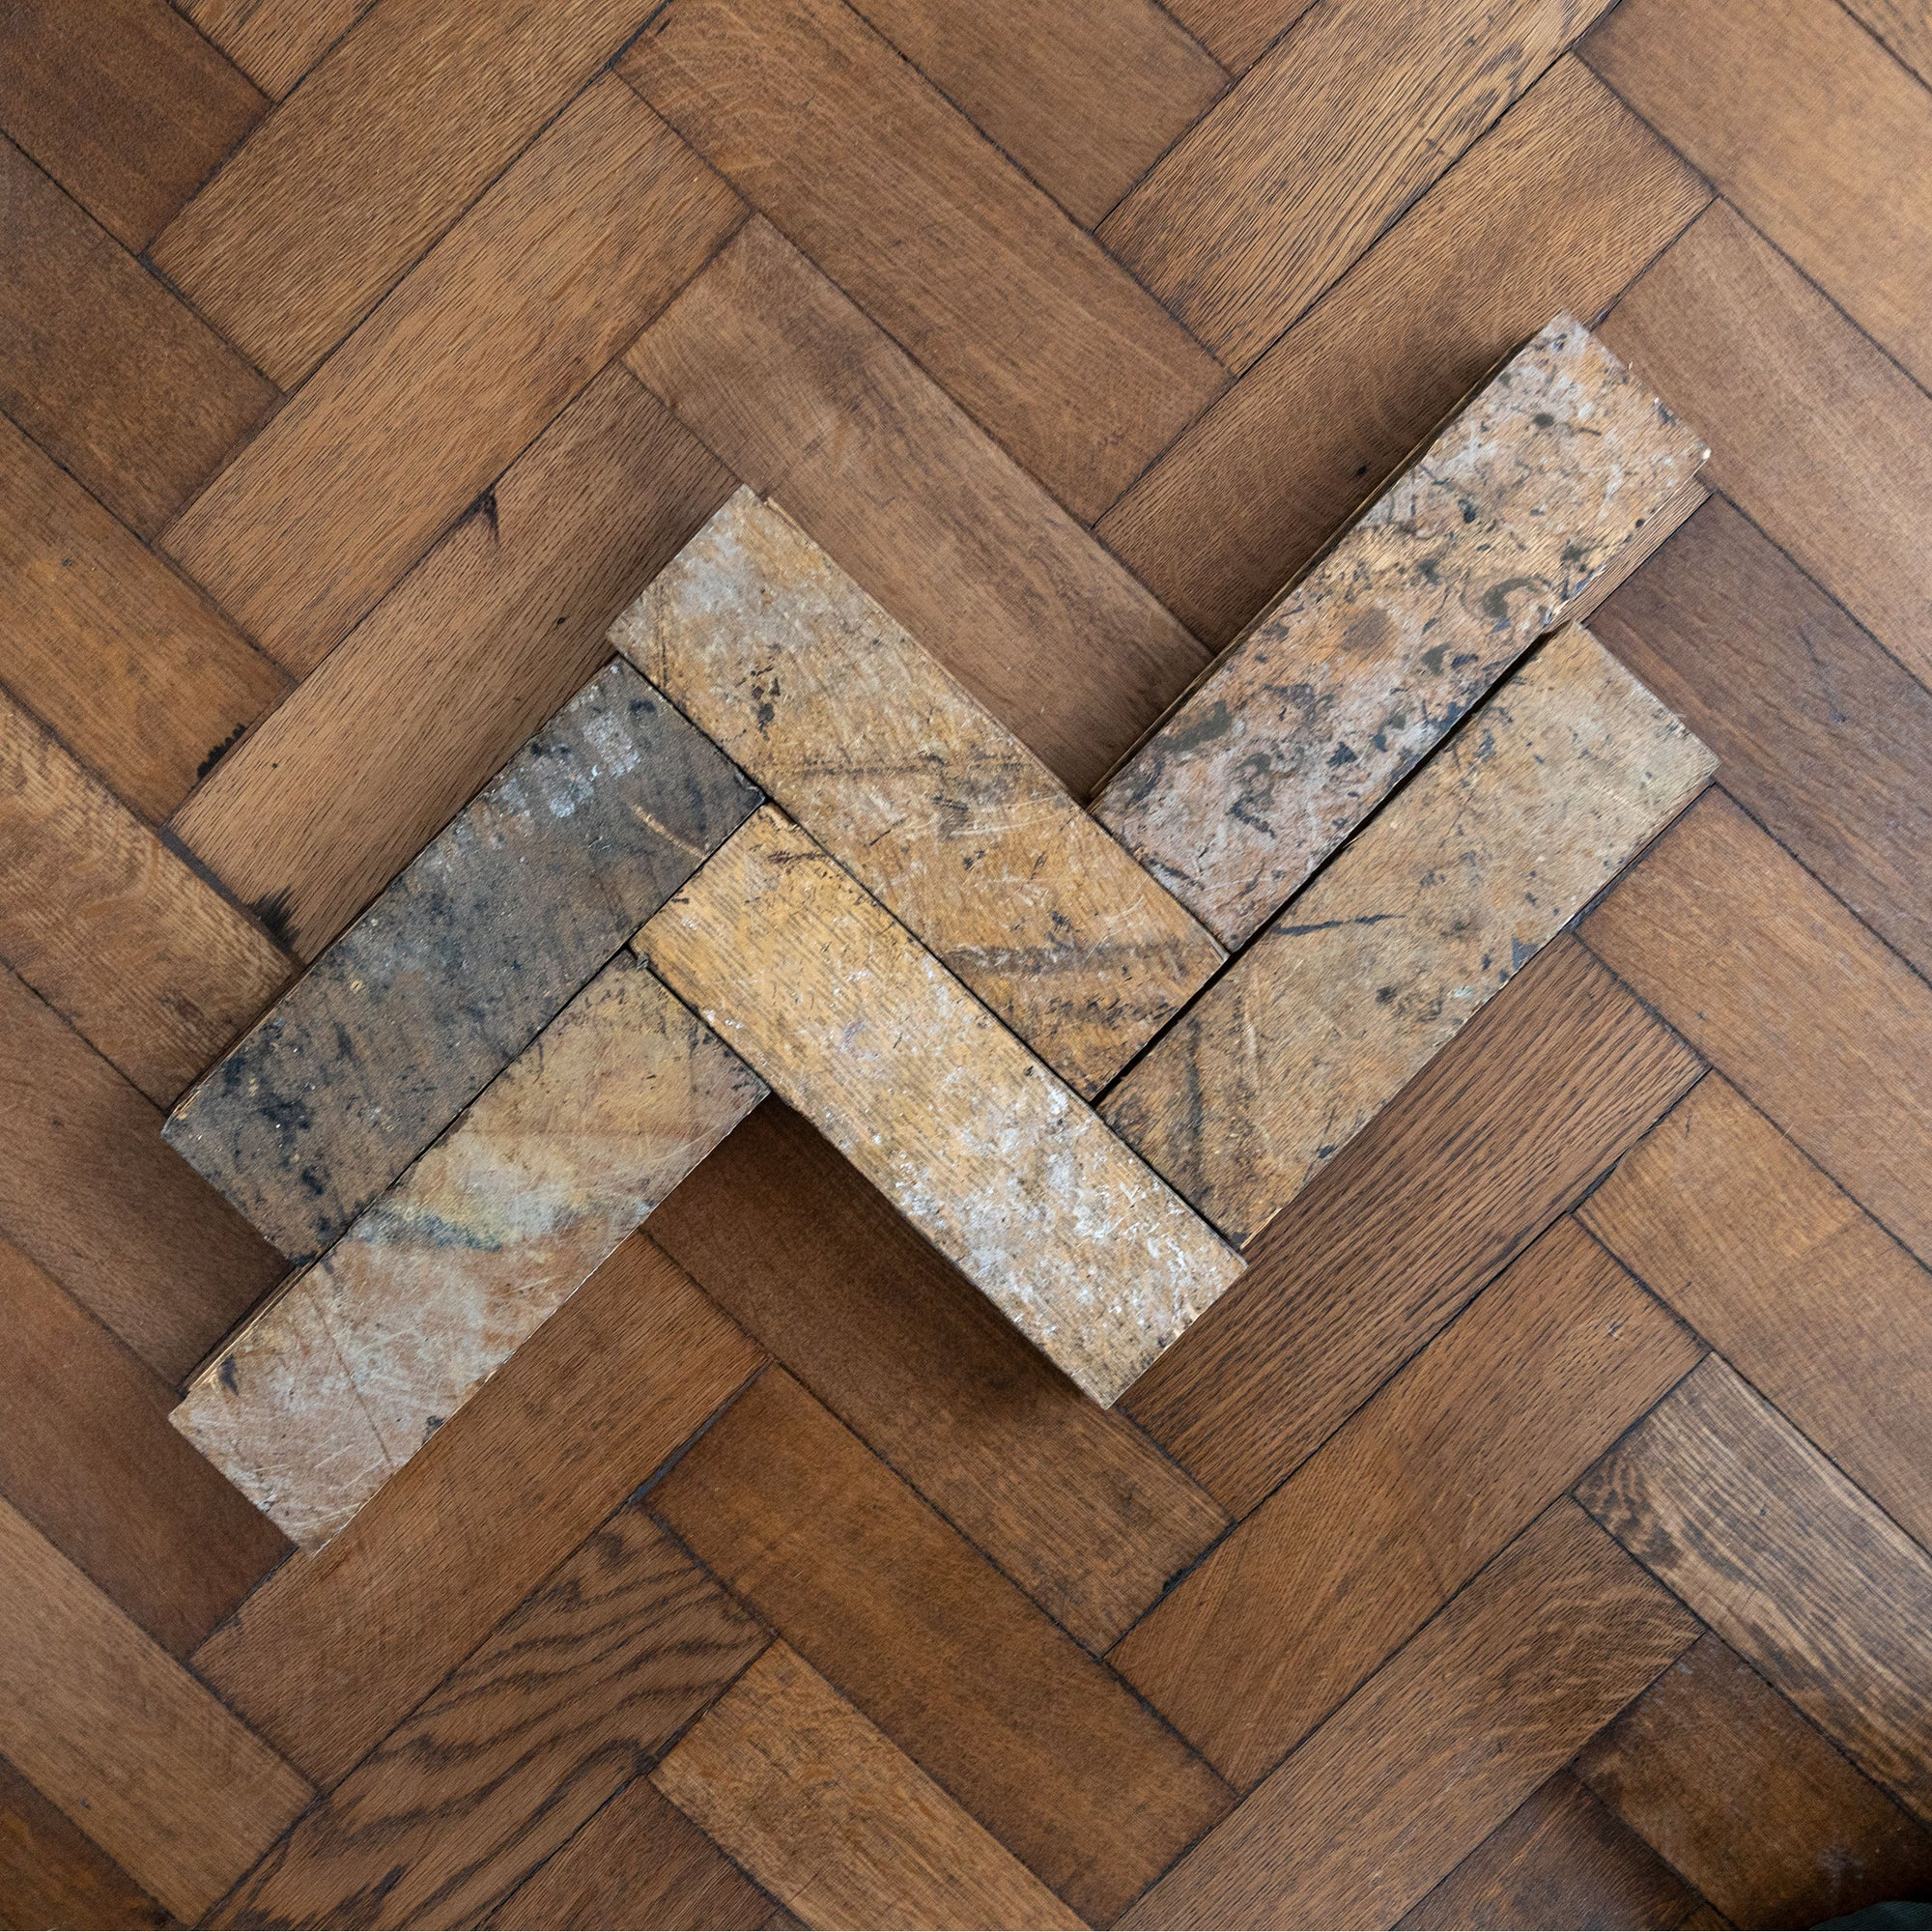 Antique Reclaimed Oak Parquet Flooring 200m² Available | The Architectural Forum